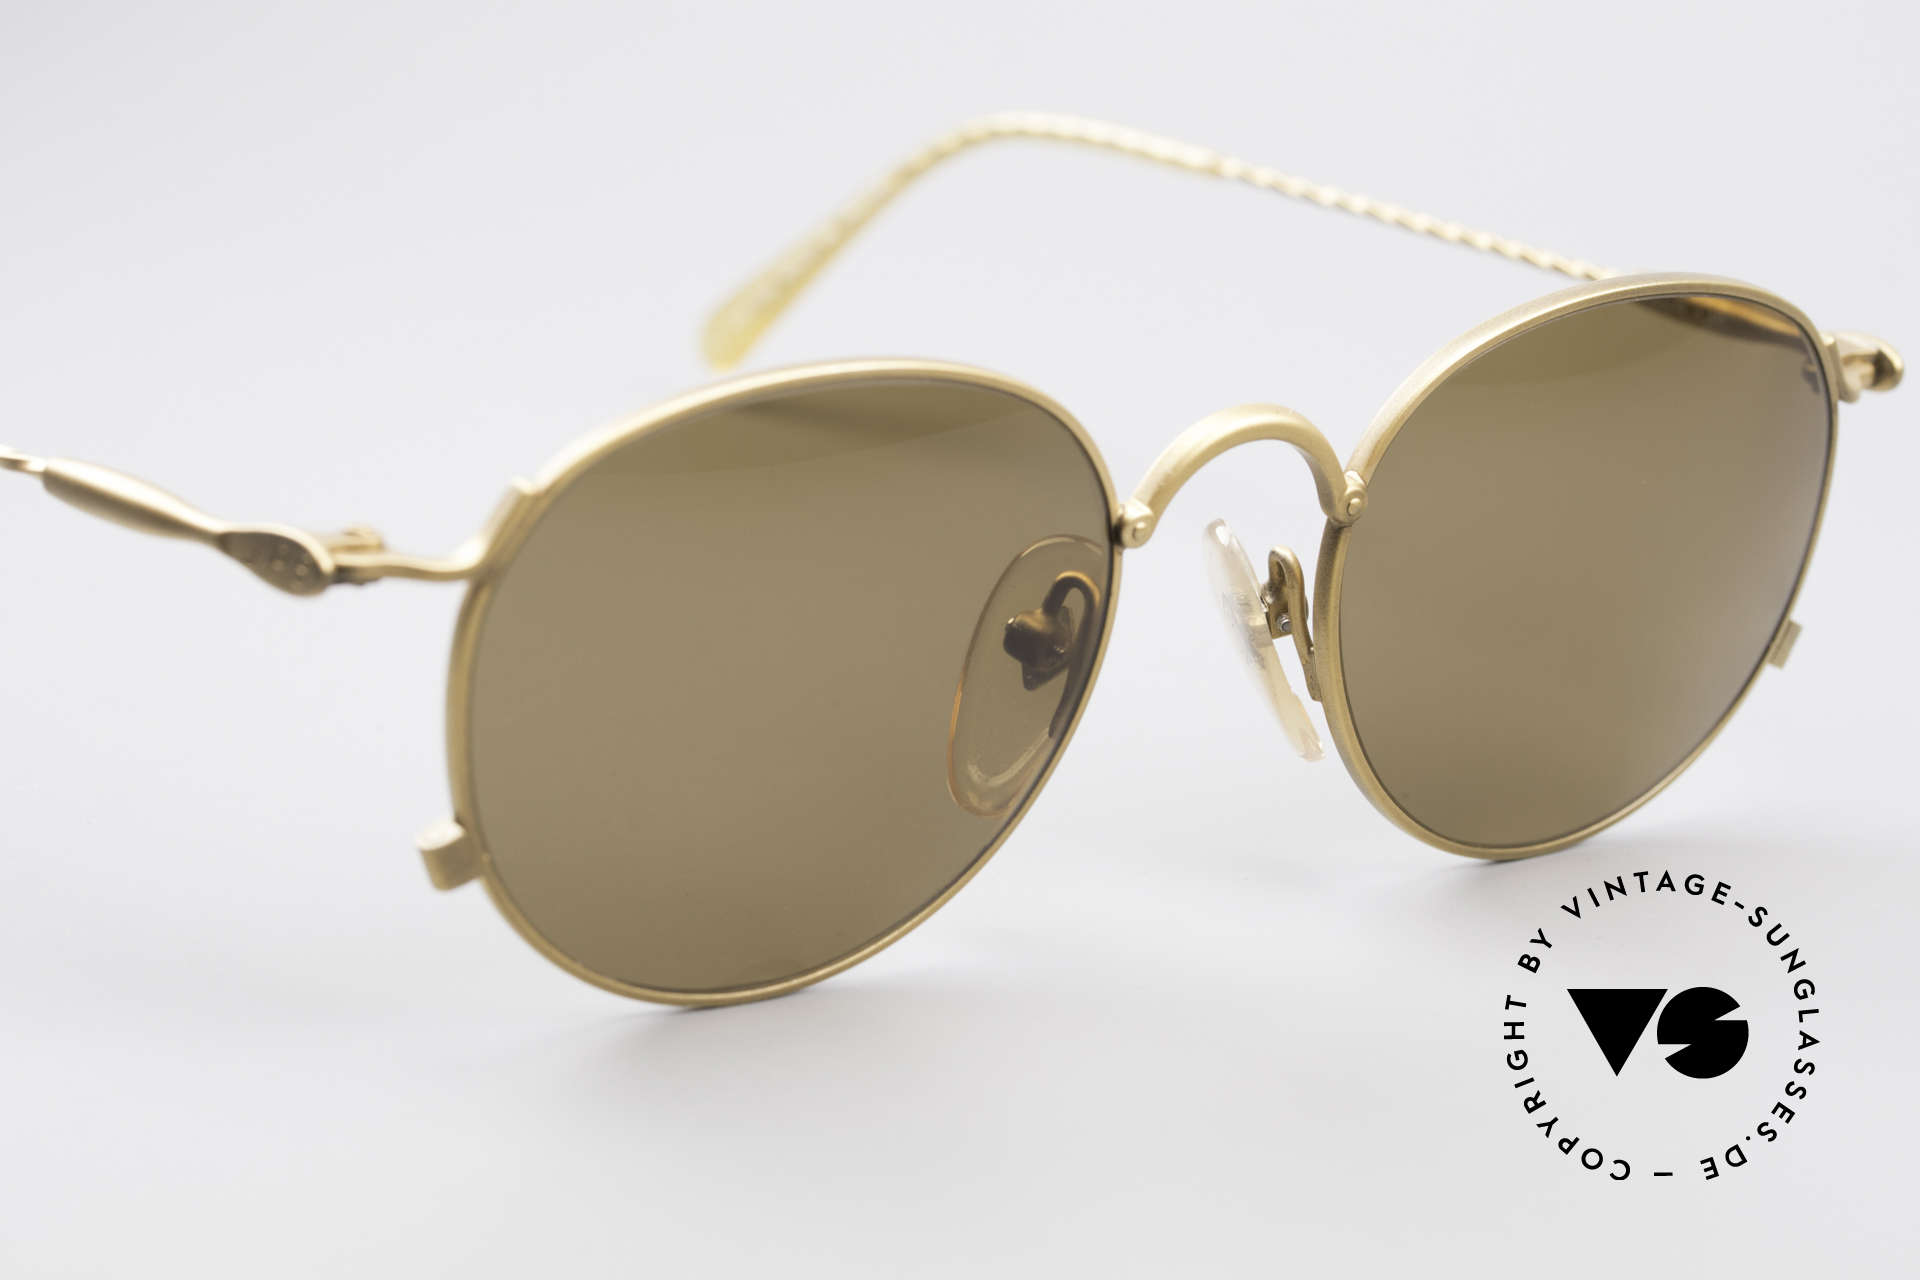 Jean Paul Gaultier 55-2172 Vintage Round JPG Sunglasses, unused (like all our rare J.P.G vintage eyewear), Made for Men and Women